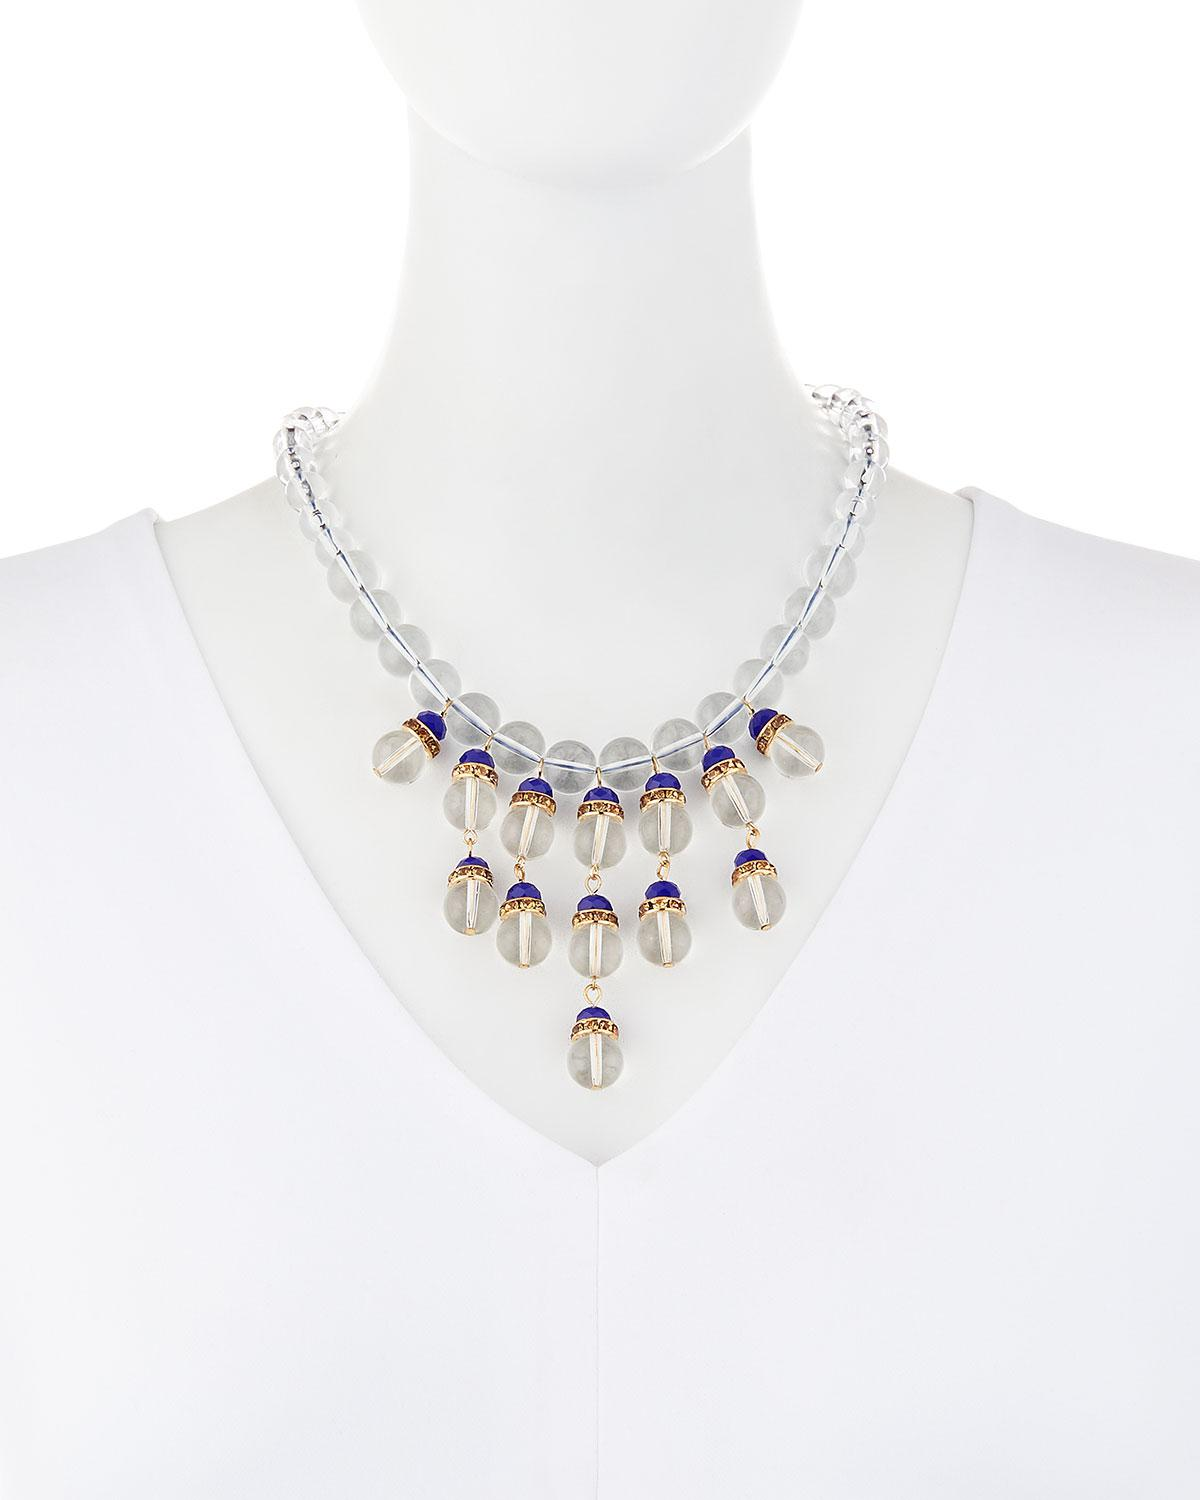 Fragments Montana Clear & Pavé Statement Necklace 82sN4pw6S